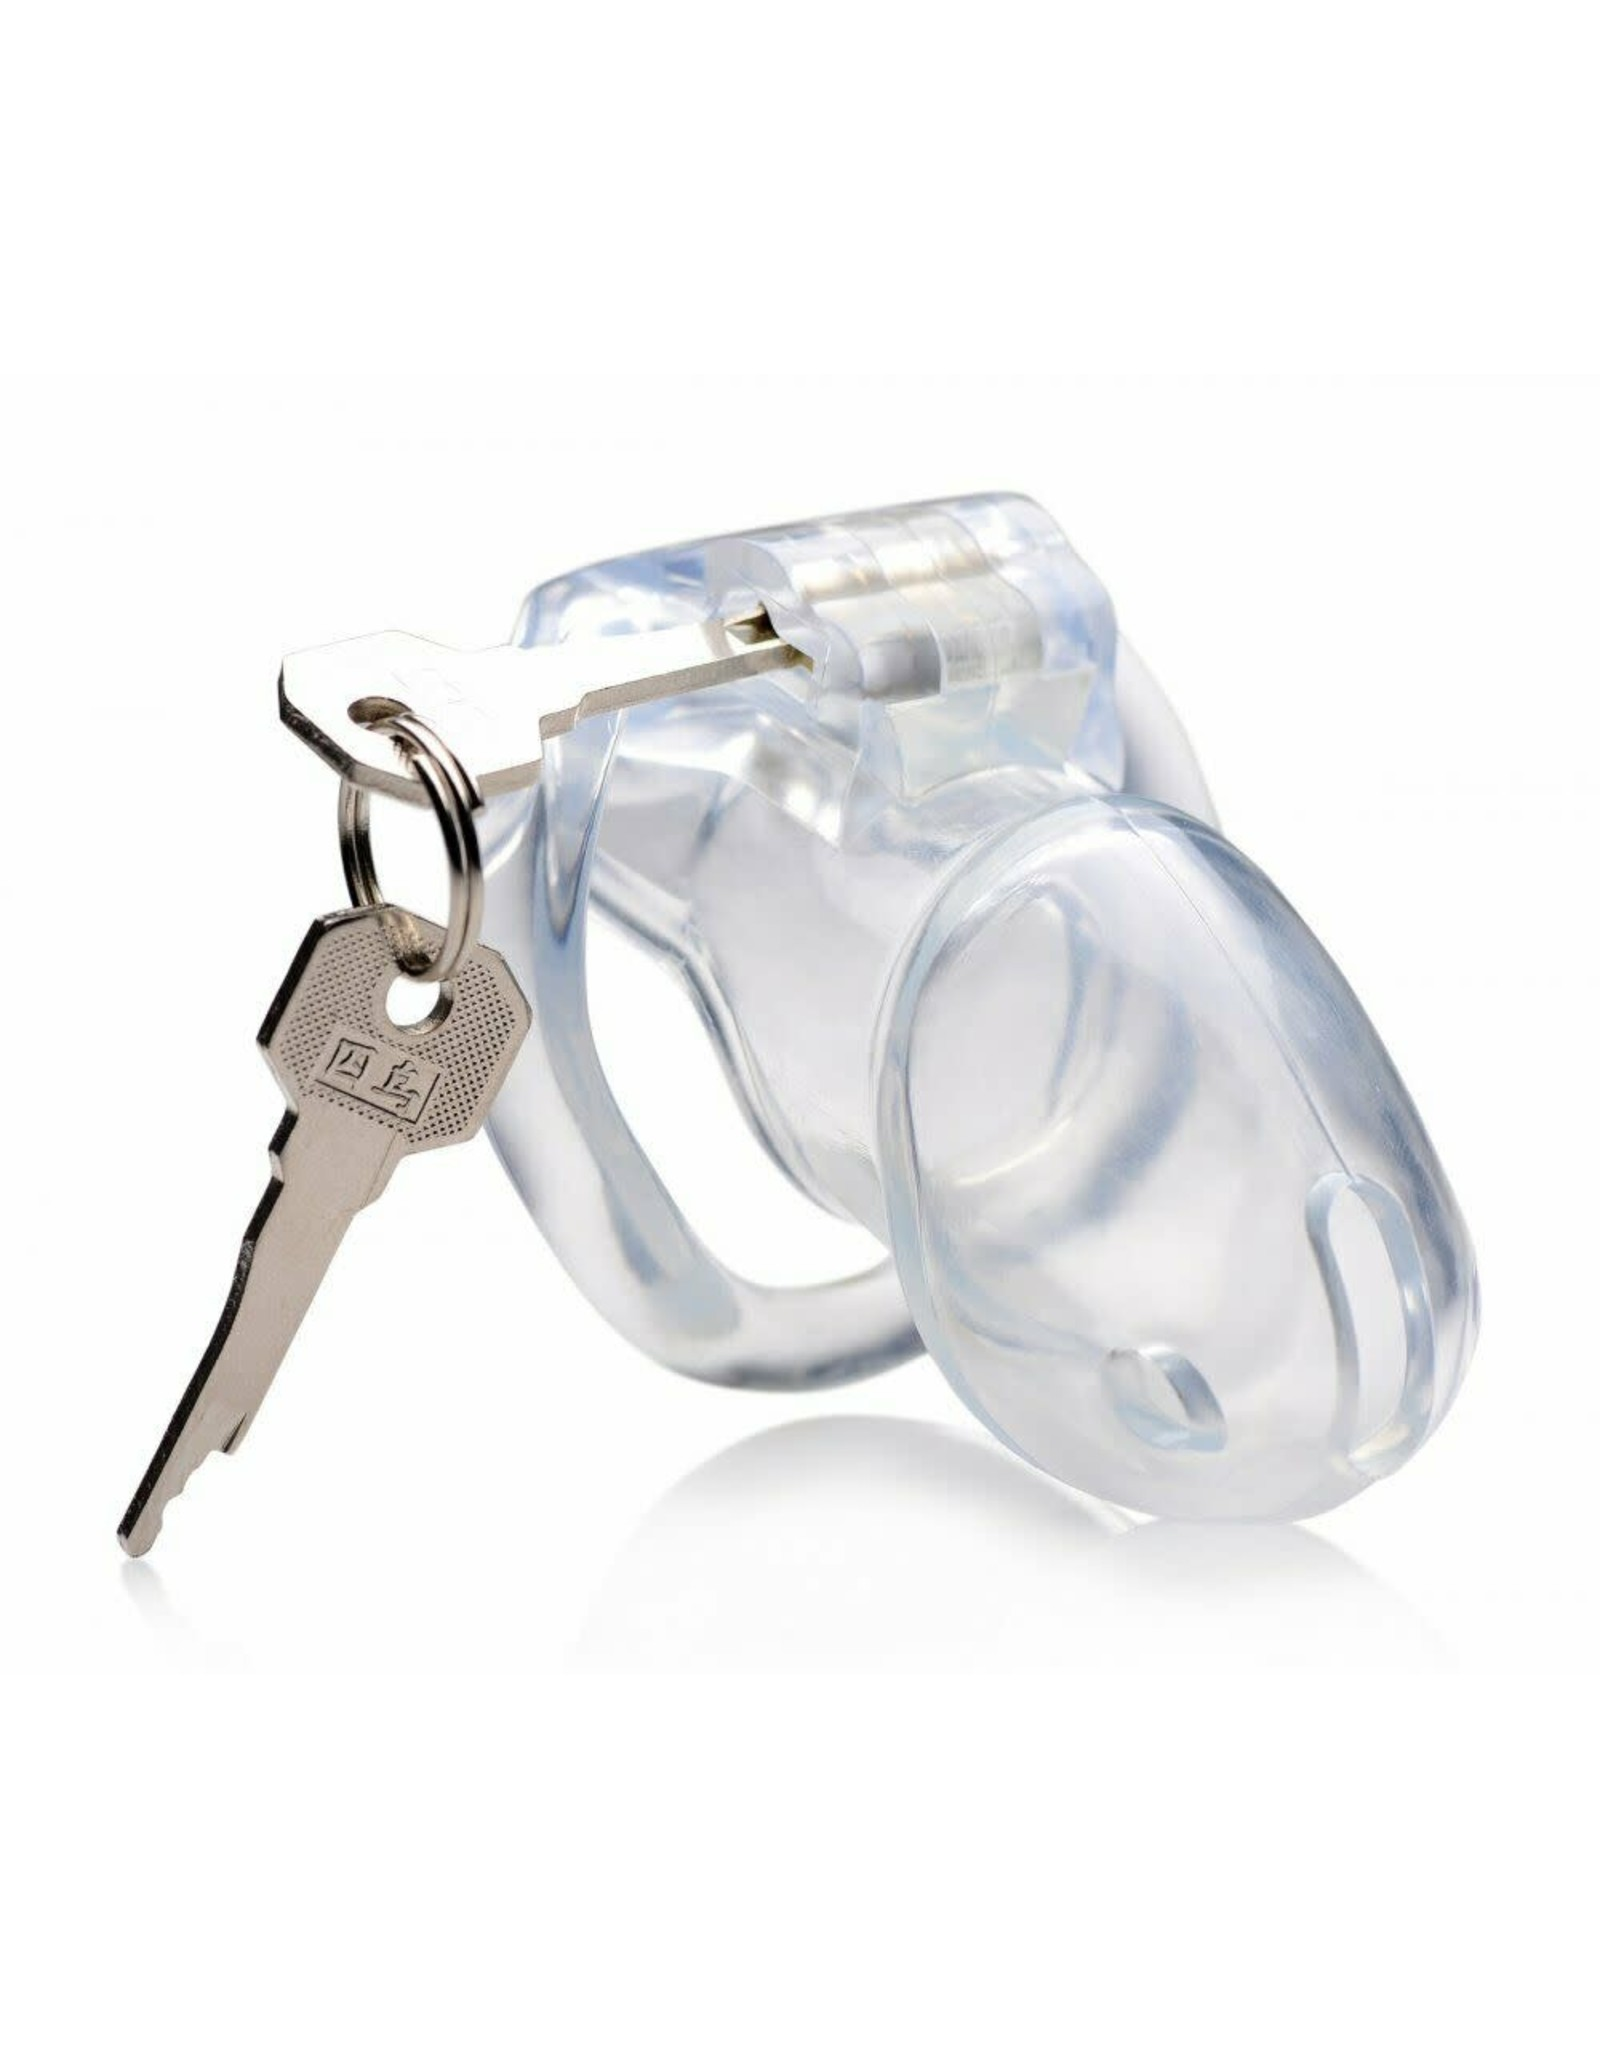 Master Series Master Series Clear Captor Chastity Cage - Medium